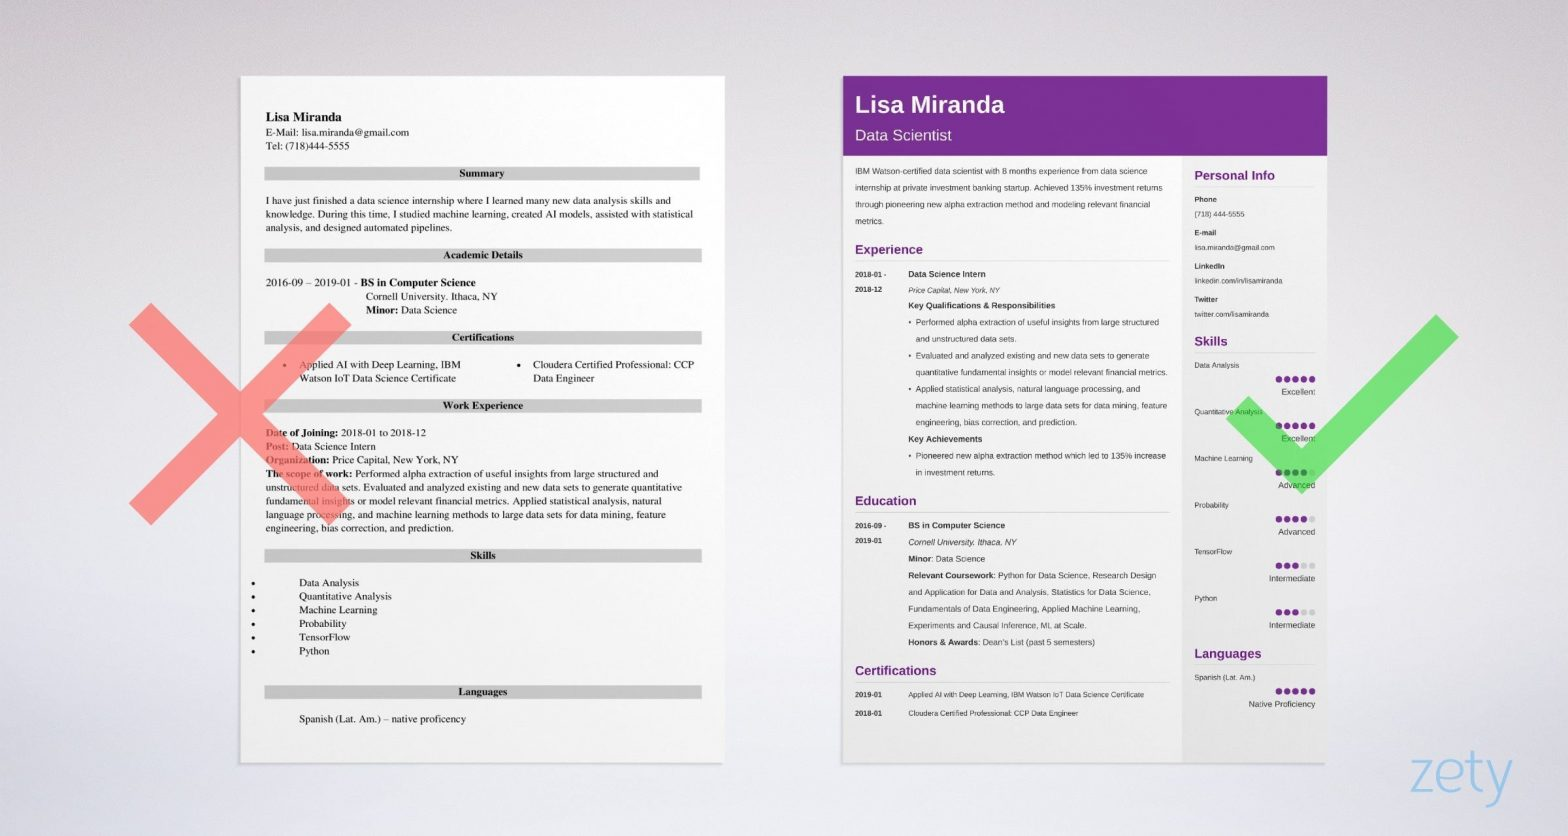 Sample Resume Title for Fresh Graduates Recent College Graduate Resume (examples for New Grads)